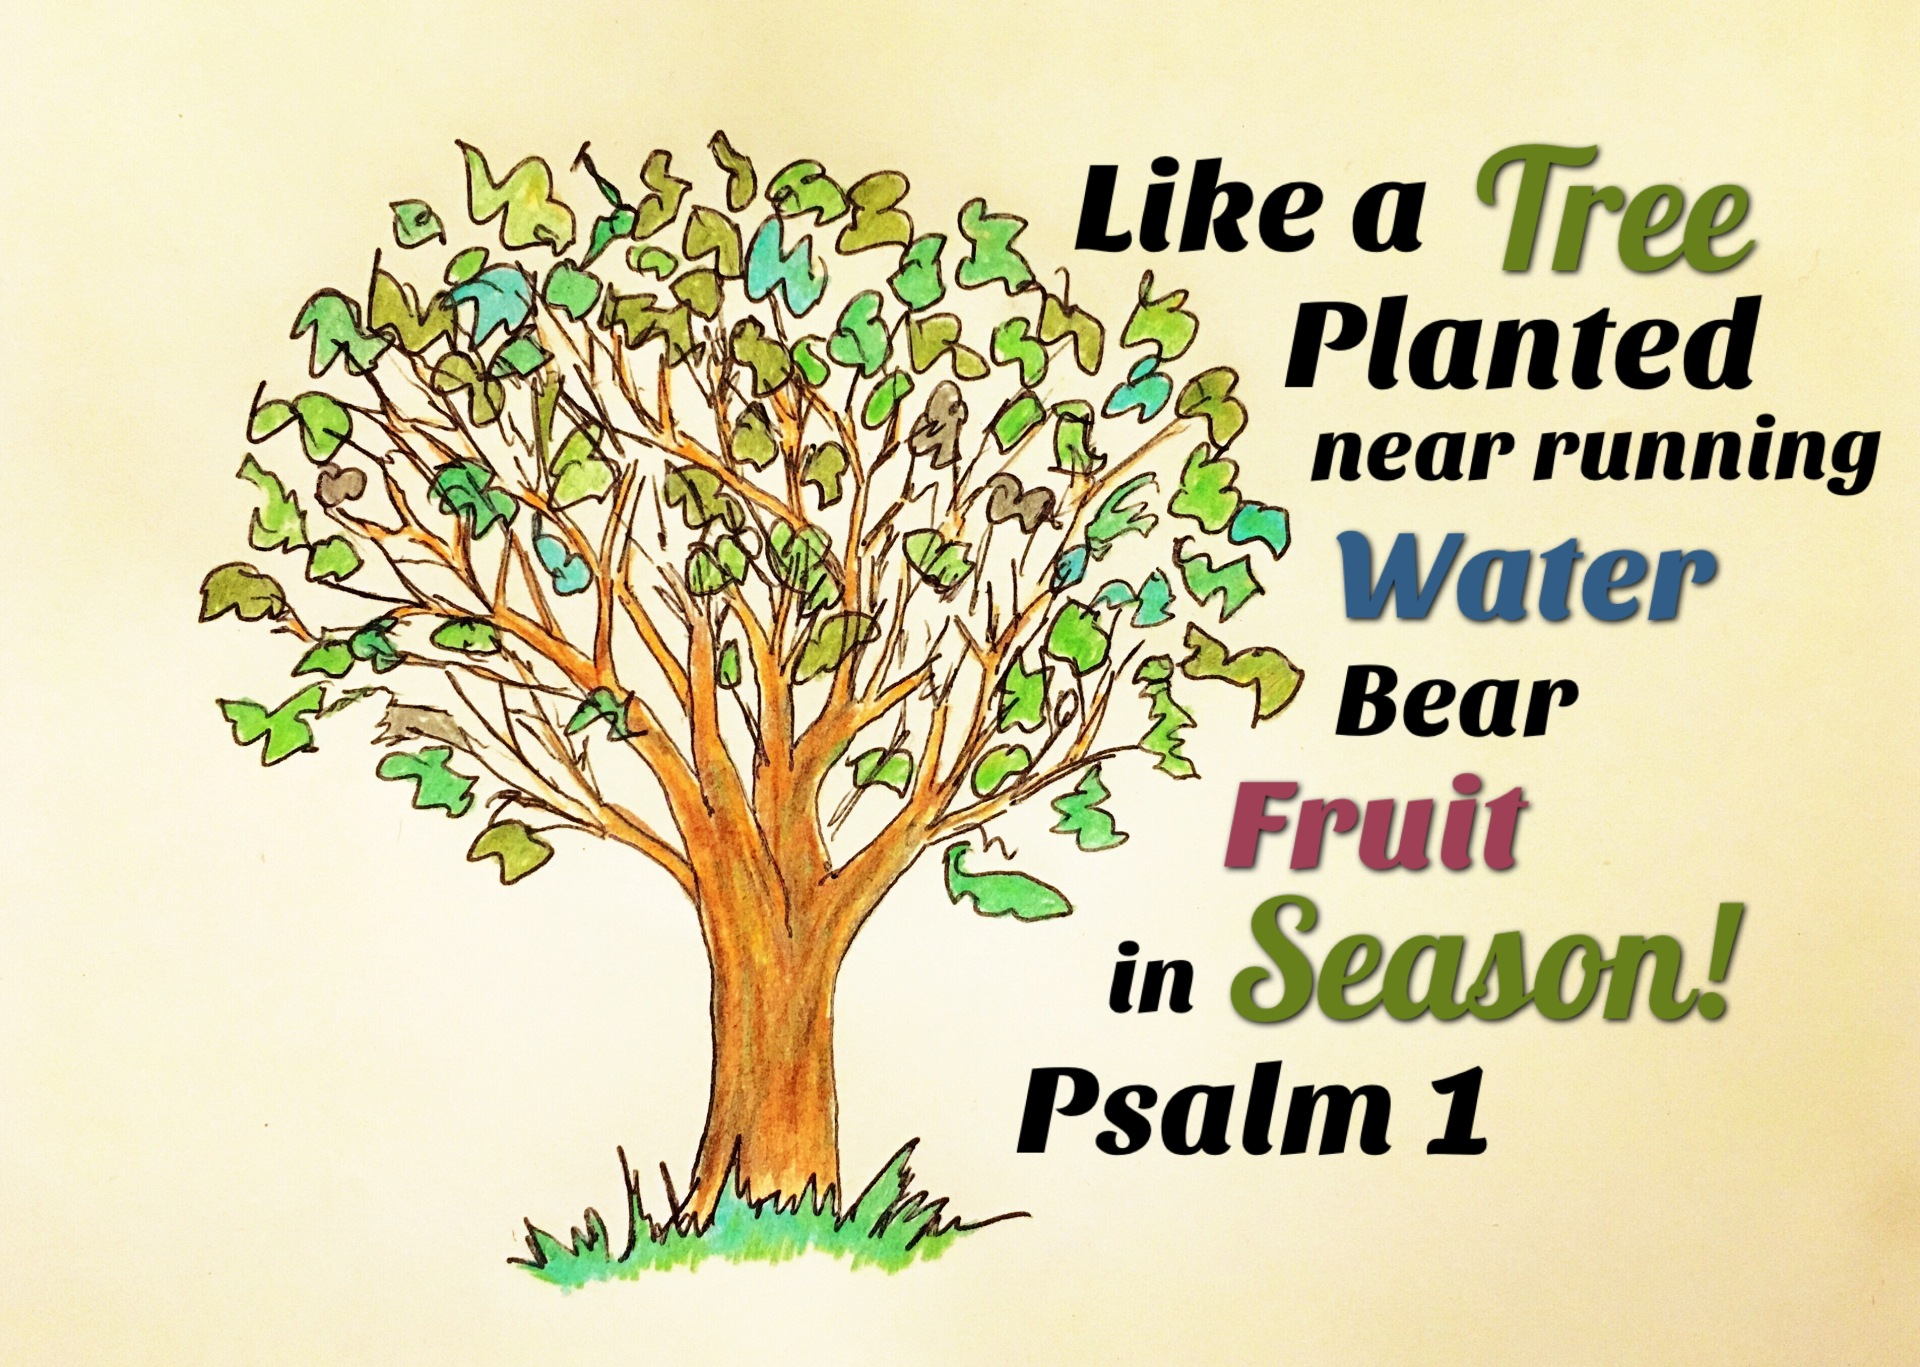 Bear Fruit in Season!